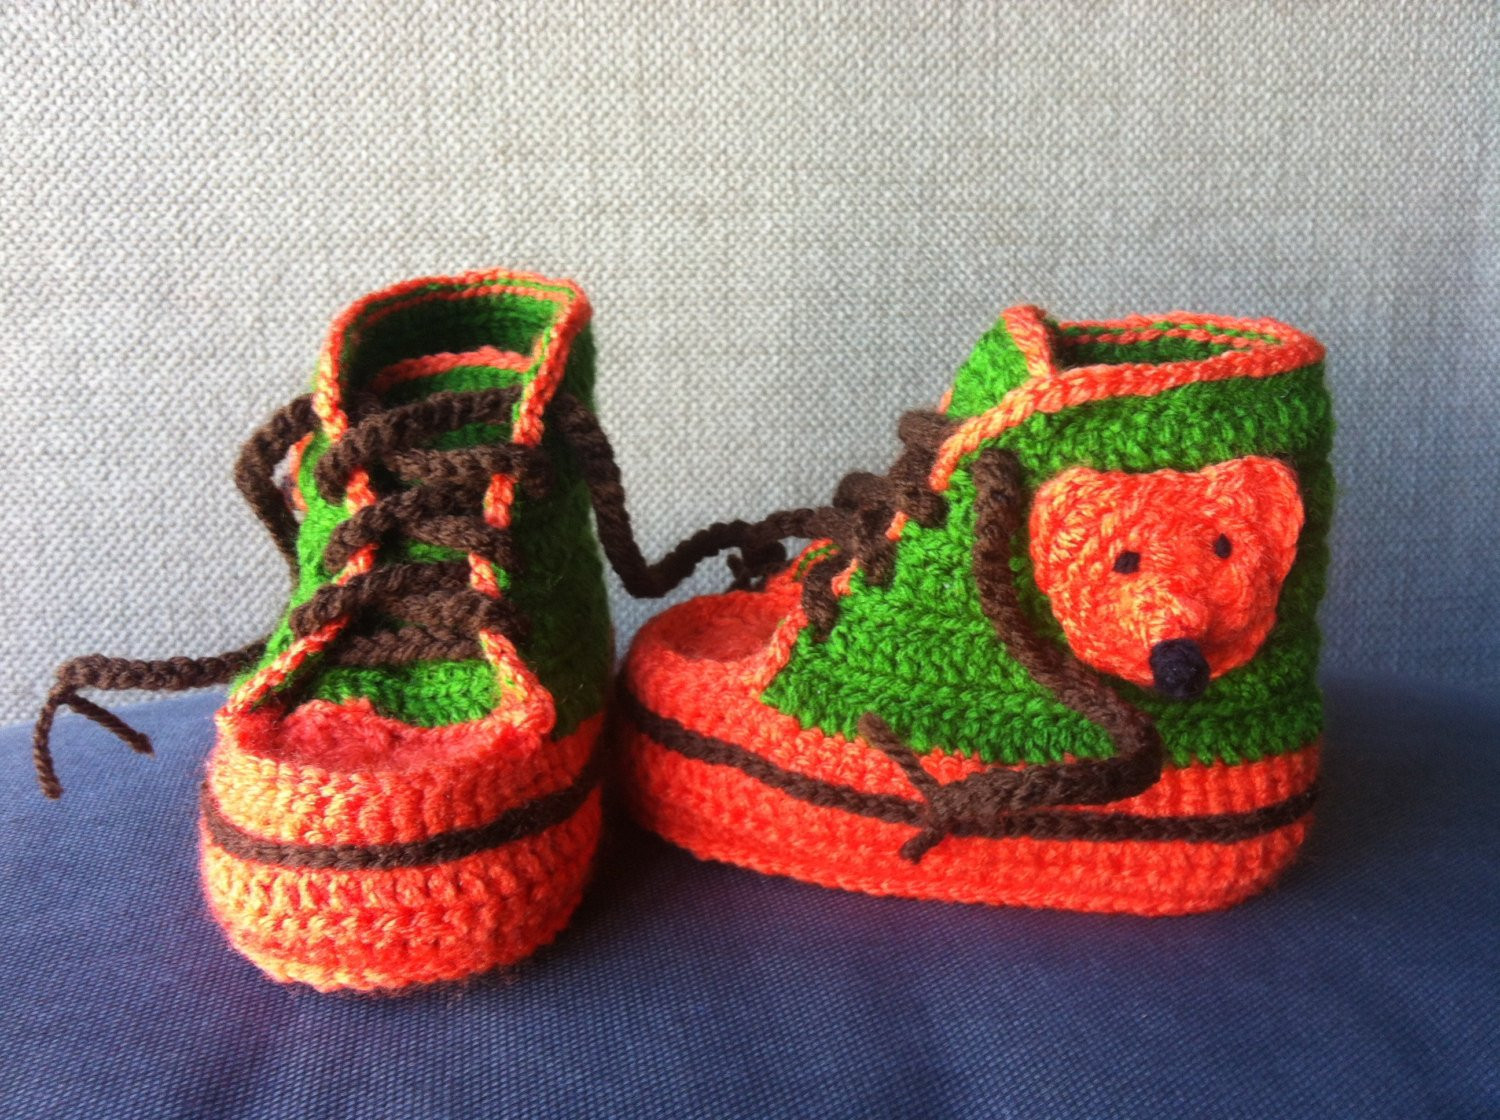 Crochet Sneakers Best Of Baby Booties Baby Sneakers Crochet Fox Shoes Baby Shoes Of Gorgeous 50 Pics Crochet Sneakers